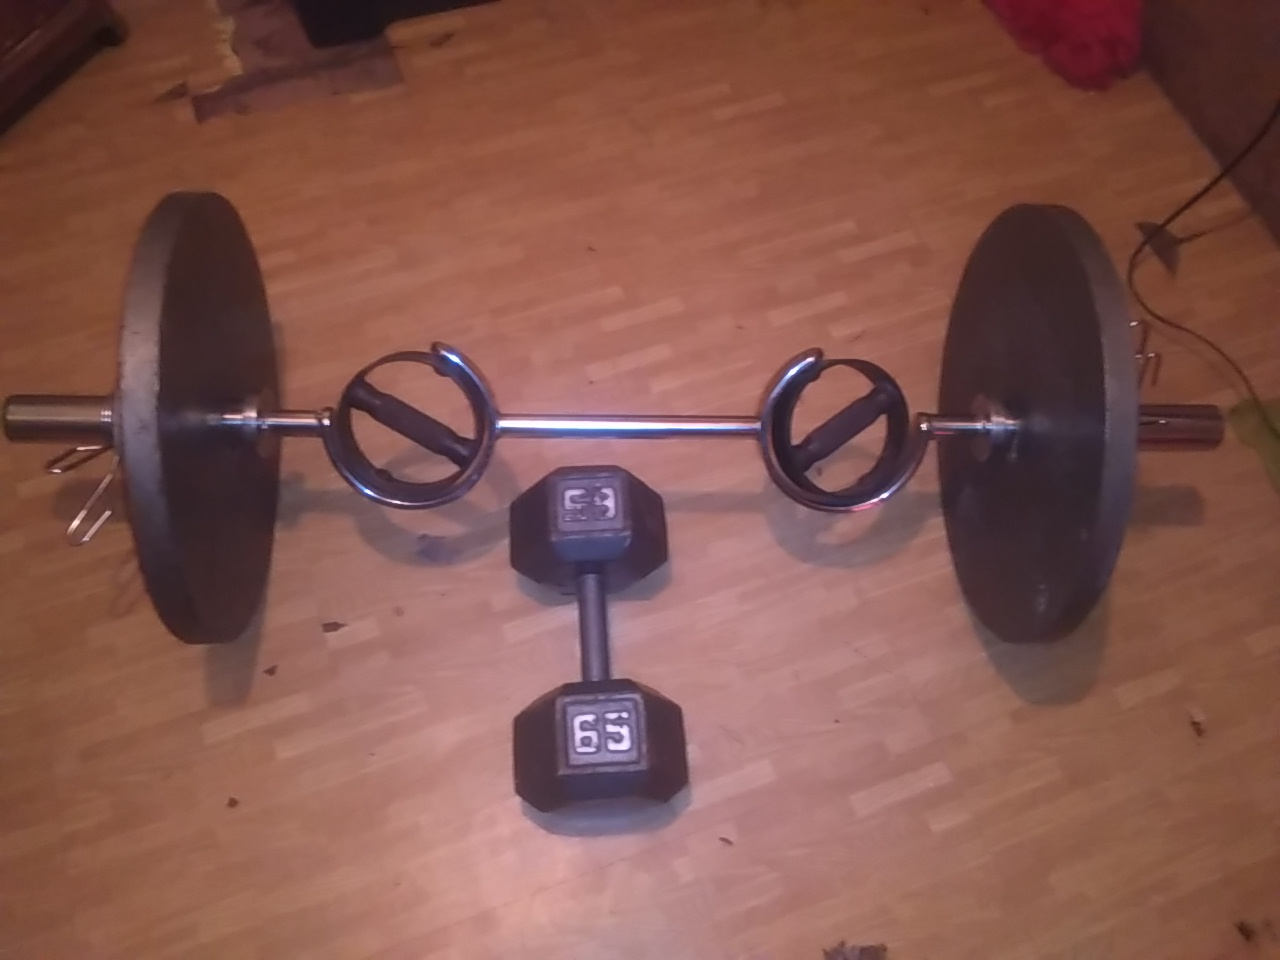 Indenpendence KS – Olympic weights for sale (6171) - Image 1